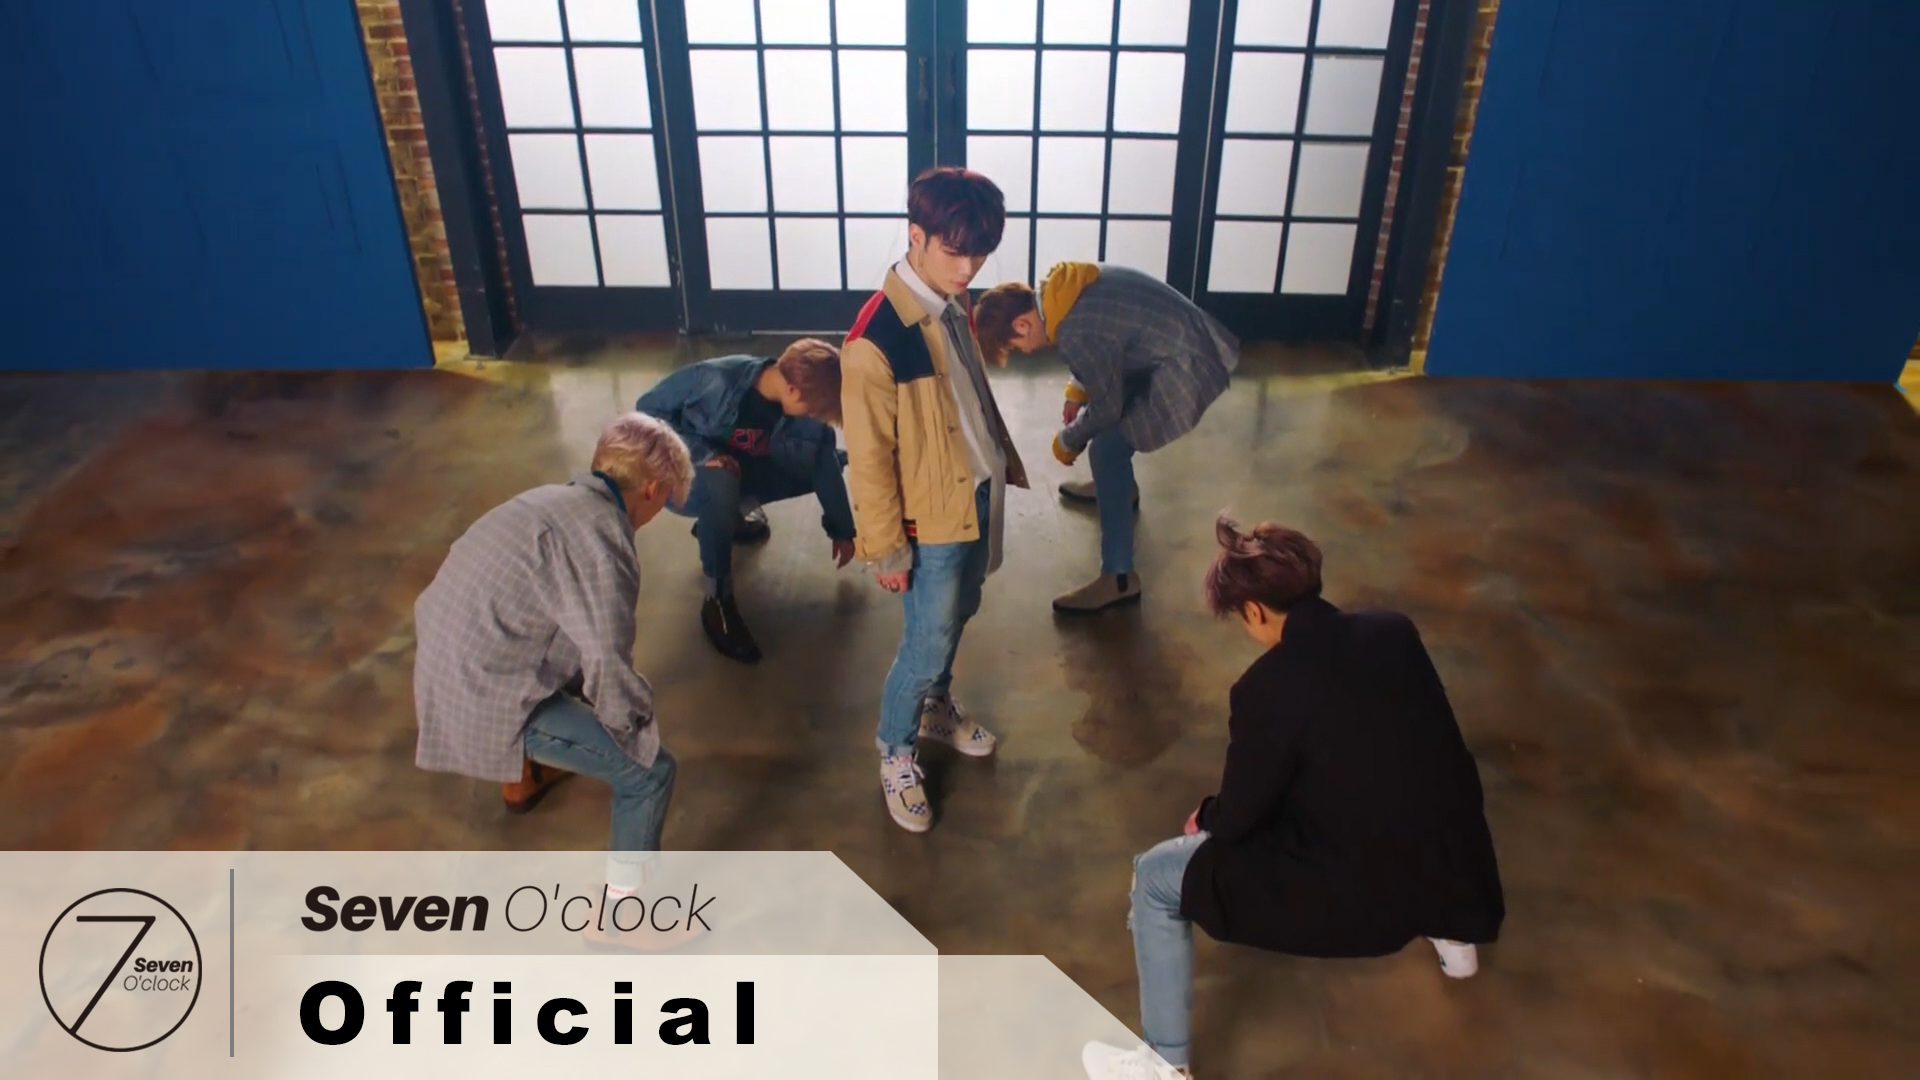 [세븐어클락(SEVENOCLOCK)] Seven O' clock 'Nothing Better' Official MV